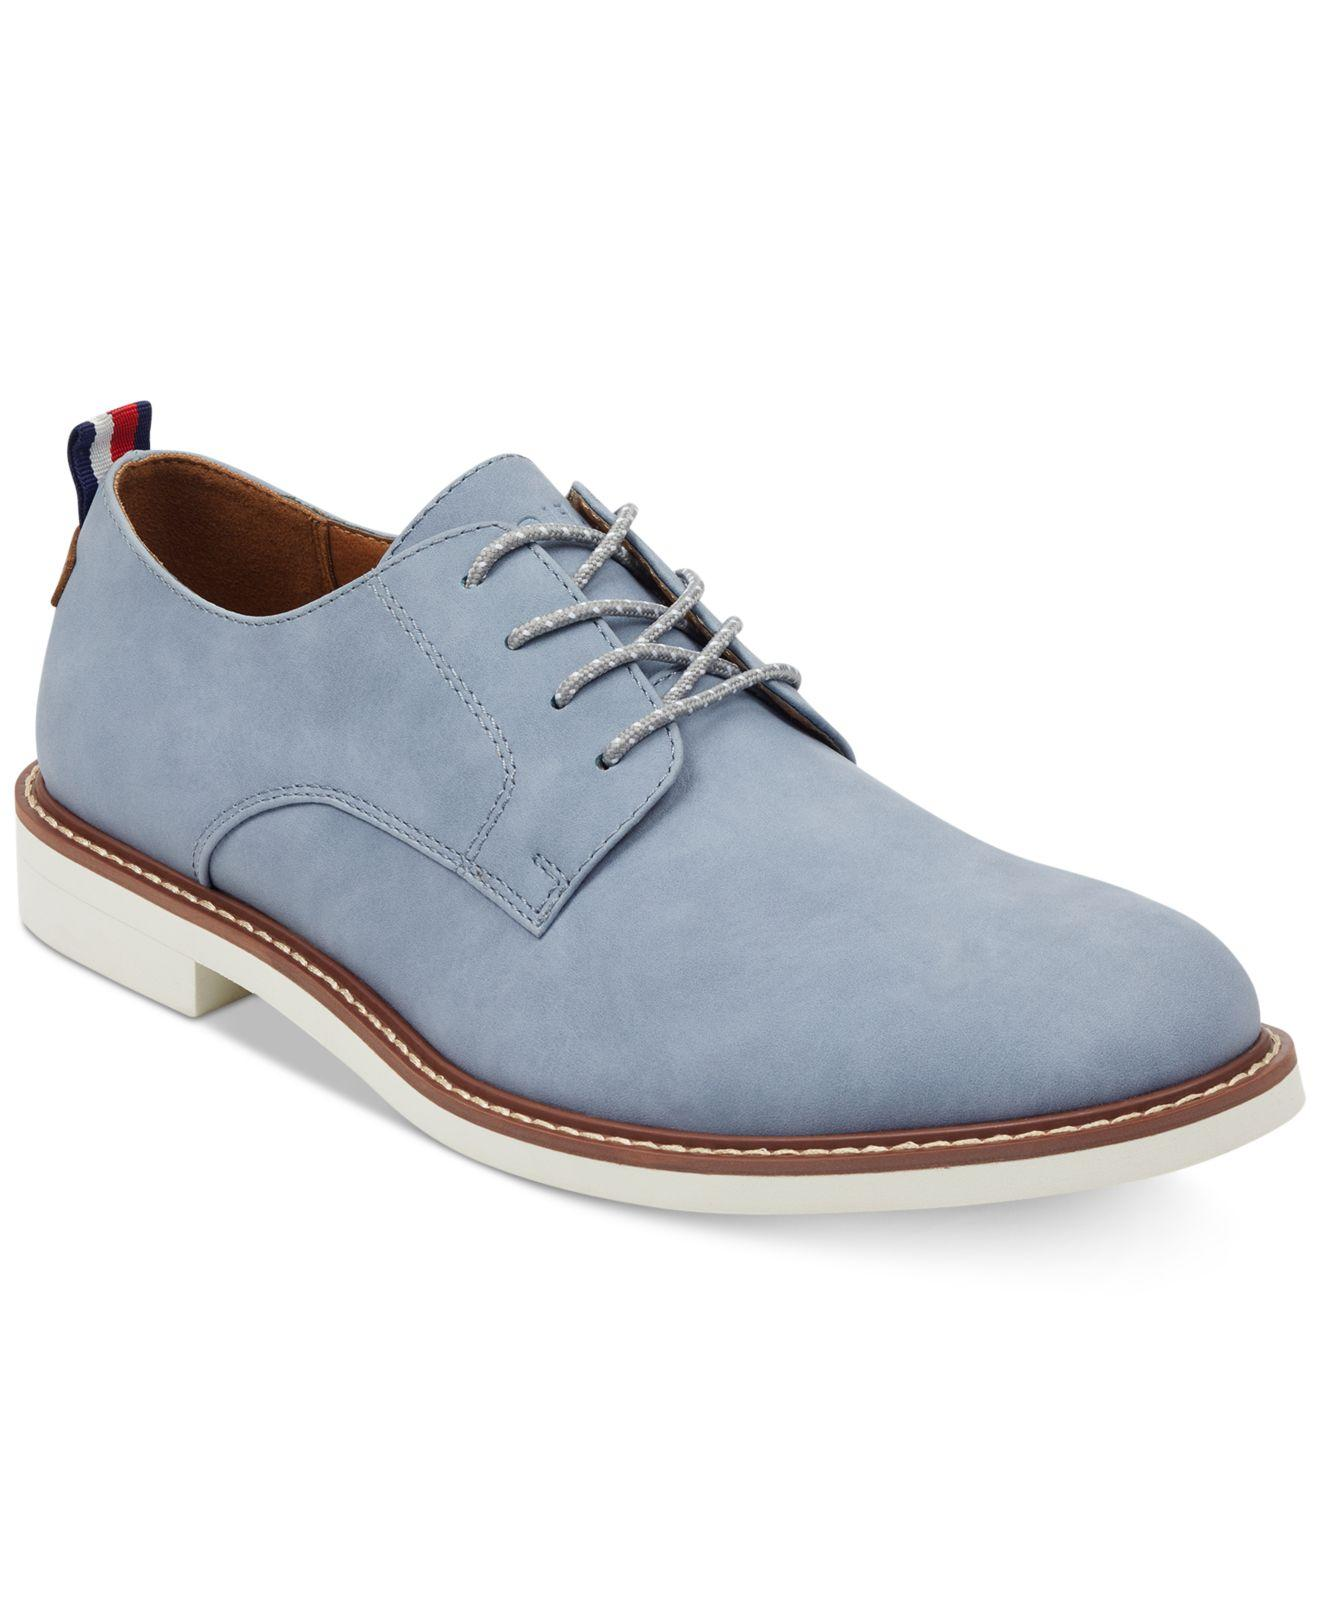 94e77c3afdaae5 Lyst - Tommy Hilfiger Garson Oxfords in Blue for Men - Save 31%